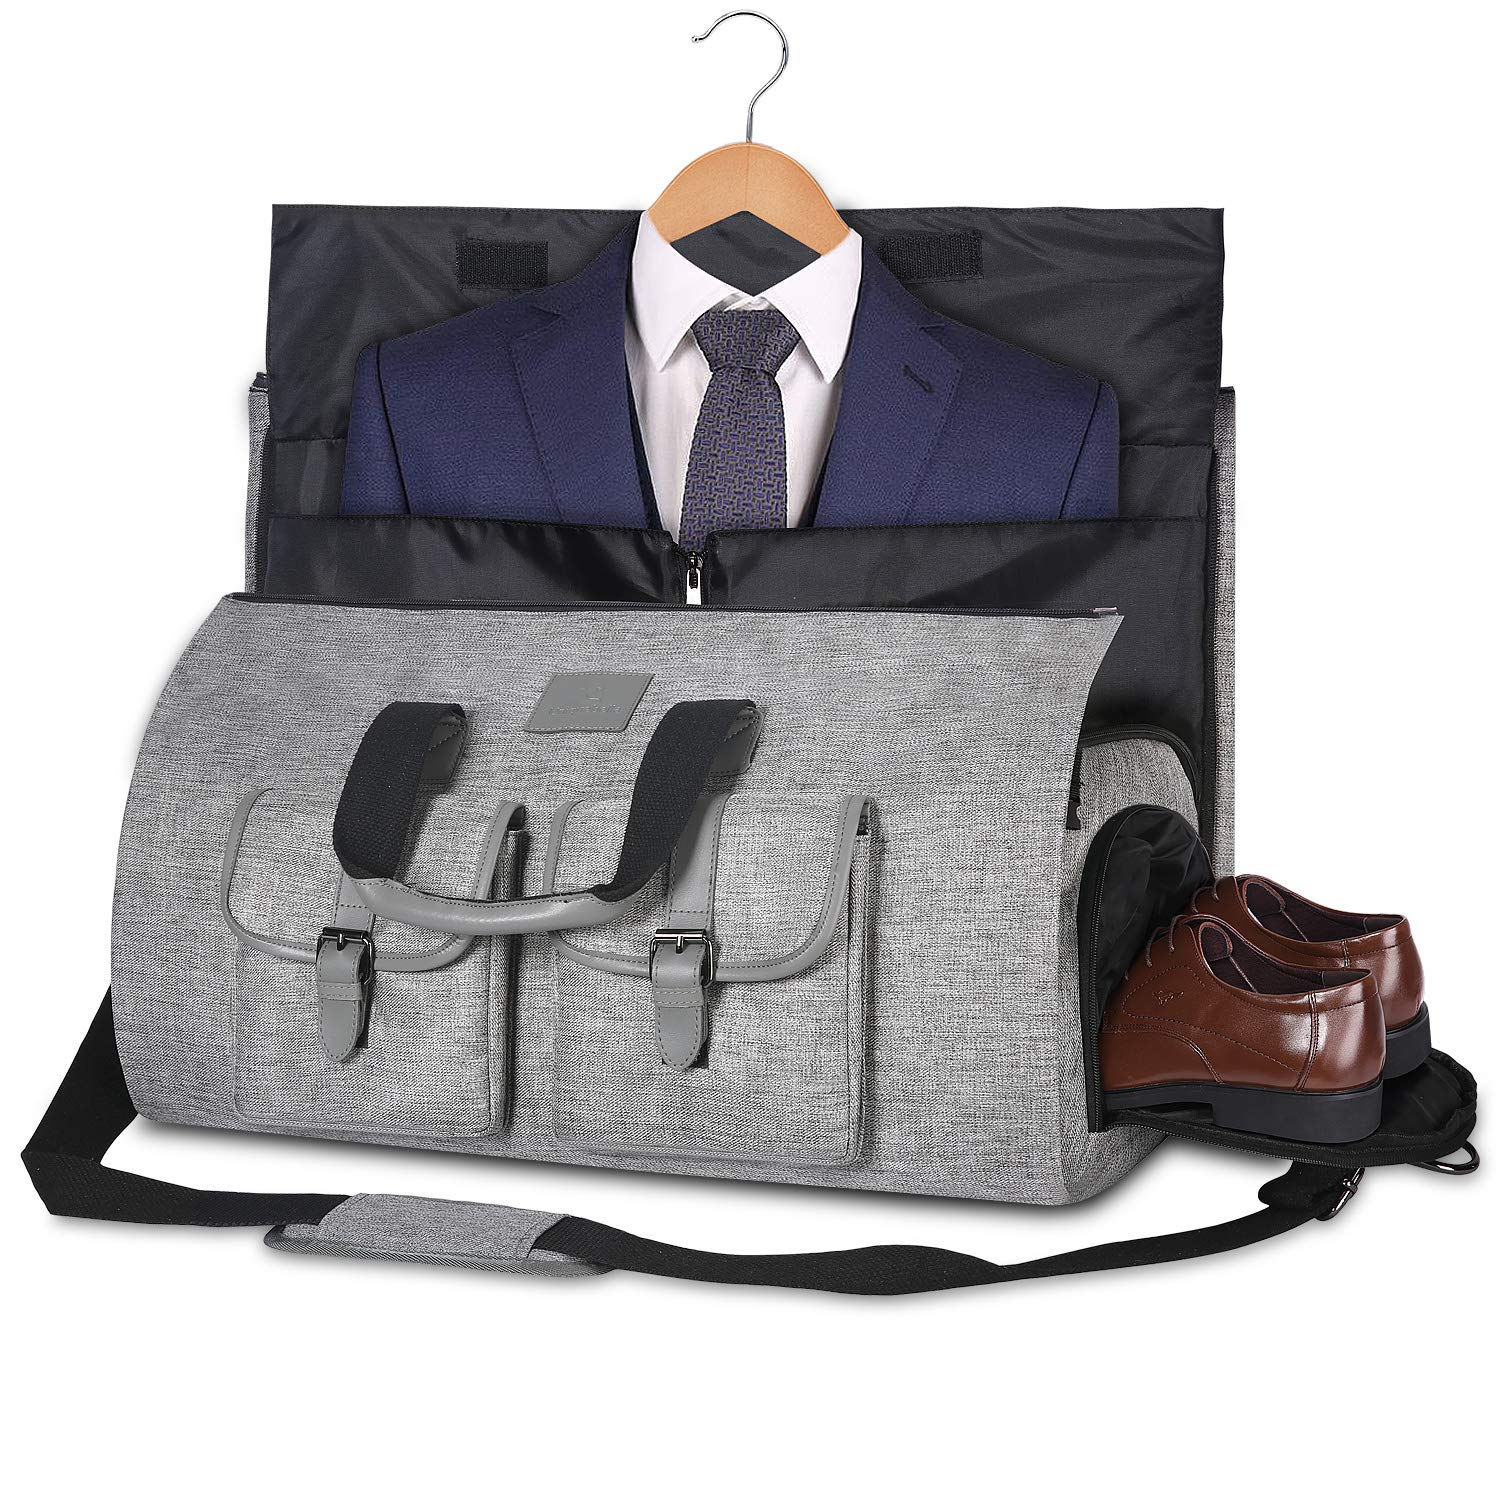 The Carry-on Garment Bag travel product recommended by Sara Skirboll on Lifney.